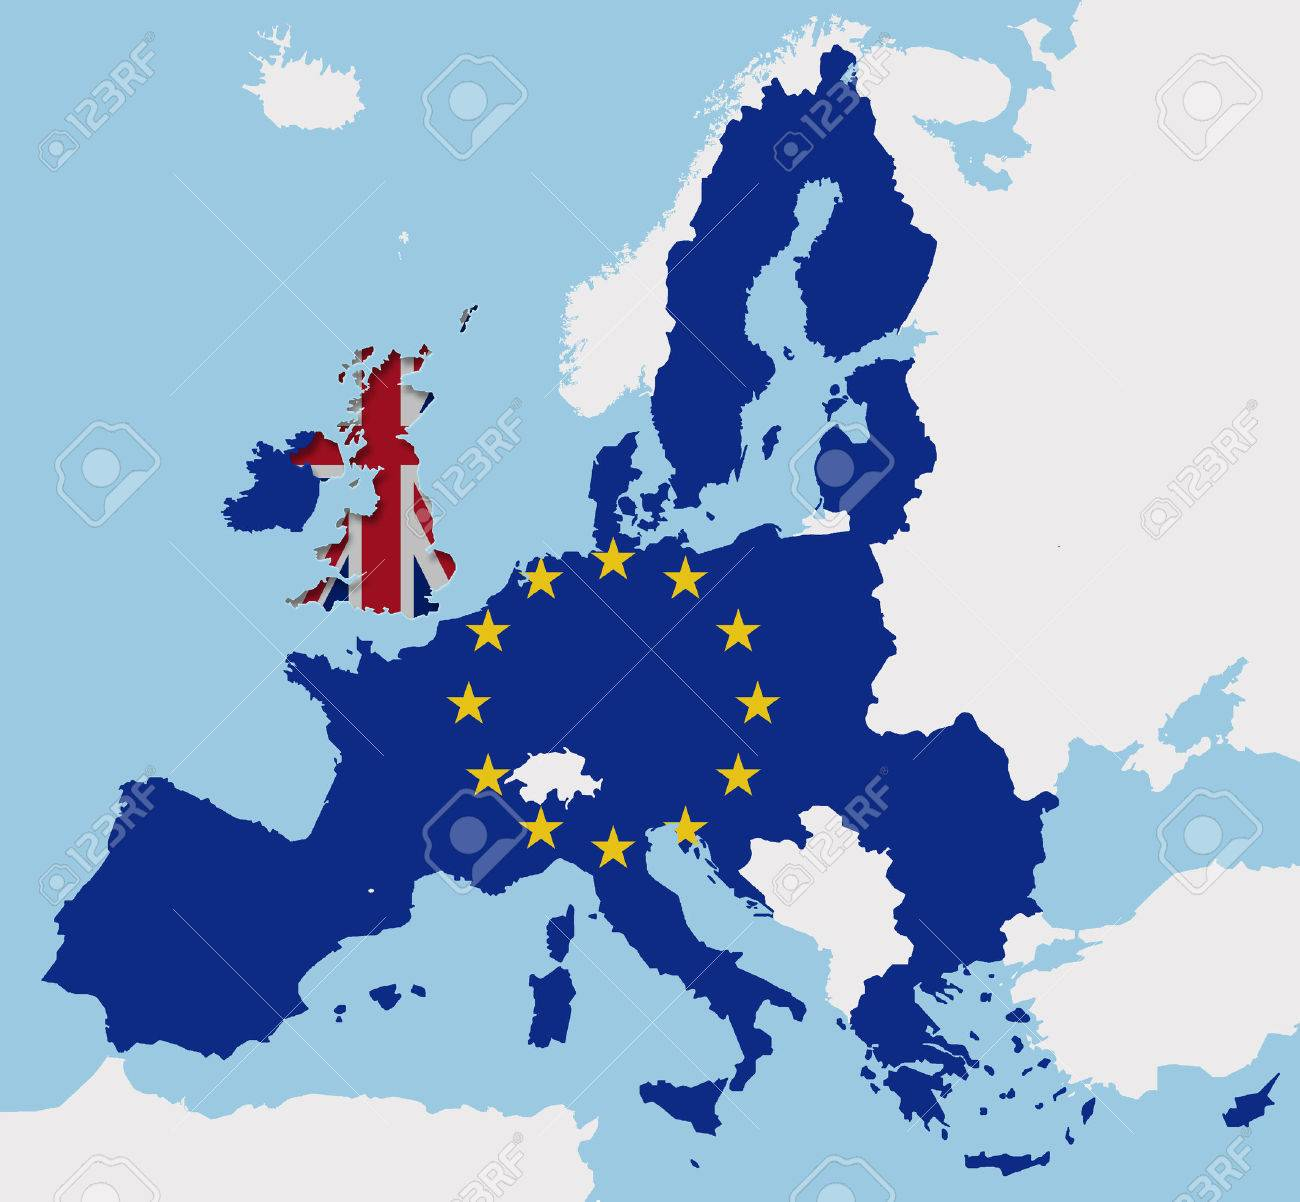 Map Of Uk In Europe.Uk Leaving The Eu With The Brexit Europe Map Cut Out Fx